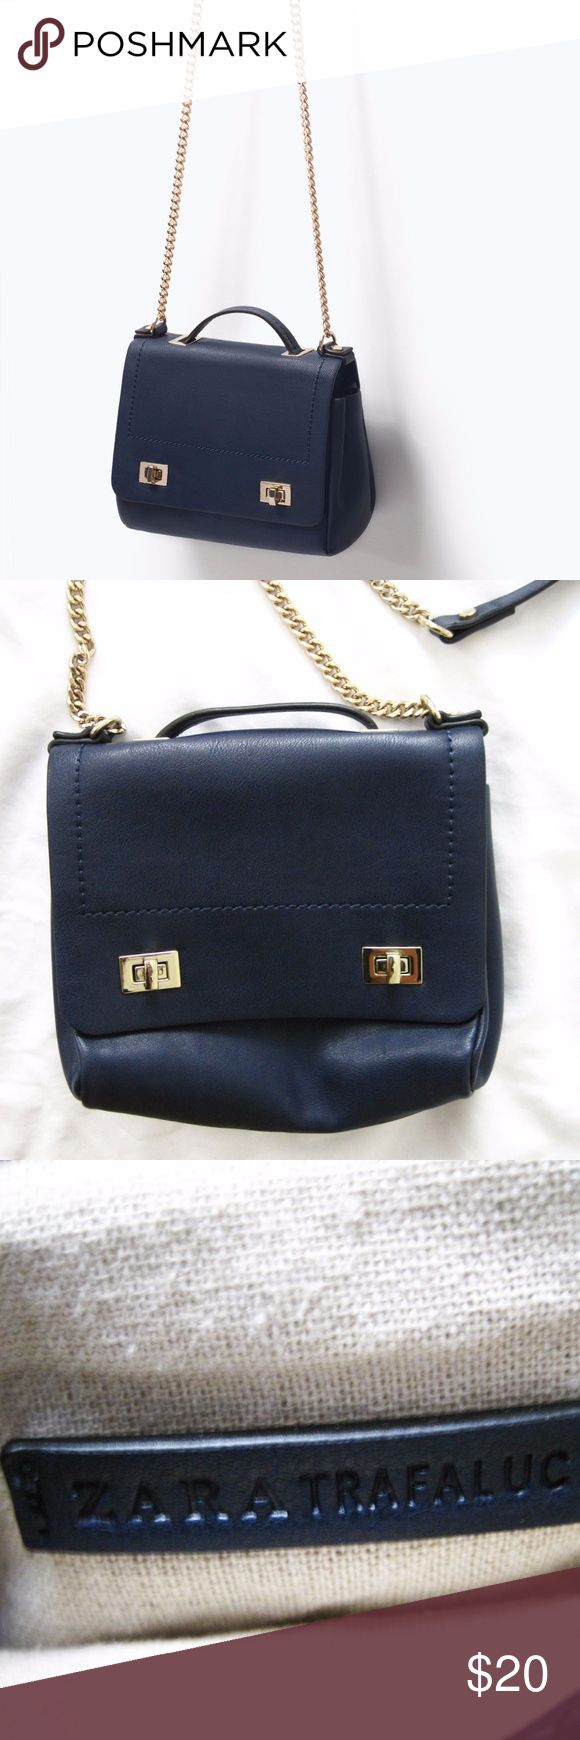 Zara Navy Mini Messenger Bag With Chain A navy mini messenger bag featuring a single handle and a gold hardware and chain. Inner lining. Great condition-minor scratch above the left closure (see image 4), other than that no scratches or any other flaws on the bag. Smoke/pet-free home. Feel free to ask questions! Measurements: 8 inches in height. 6 inches in width. Lining fabric content: 50 cotton. 30% linen. 20% polyester. Zara Bags Crossbody Bags